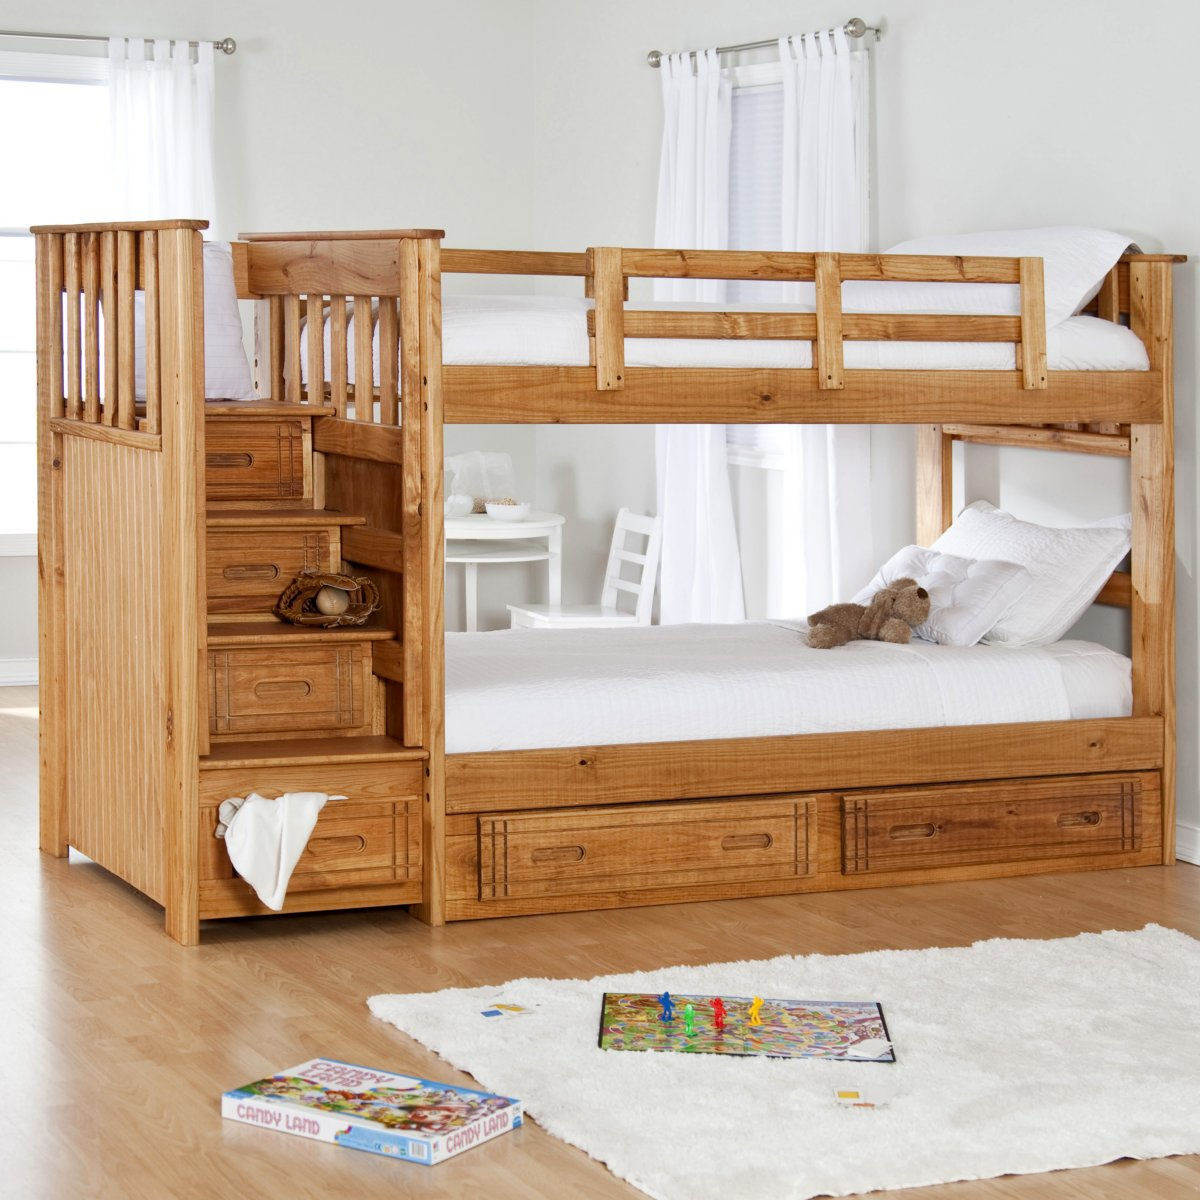 Lavish Kids Bedroom Using Wooden Bunk Bed With Ladder and Storages